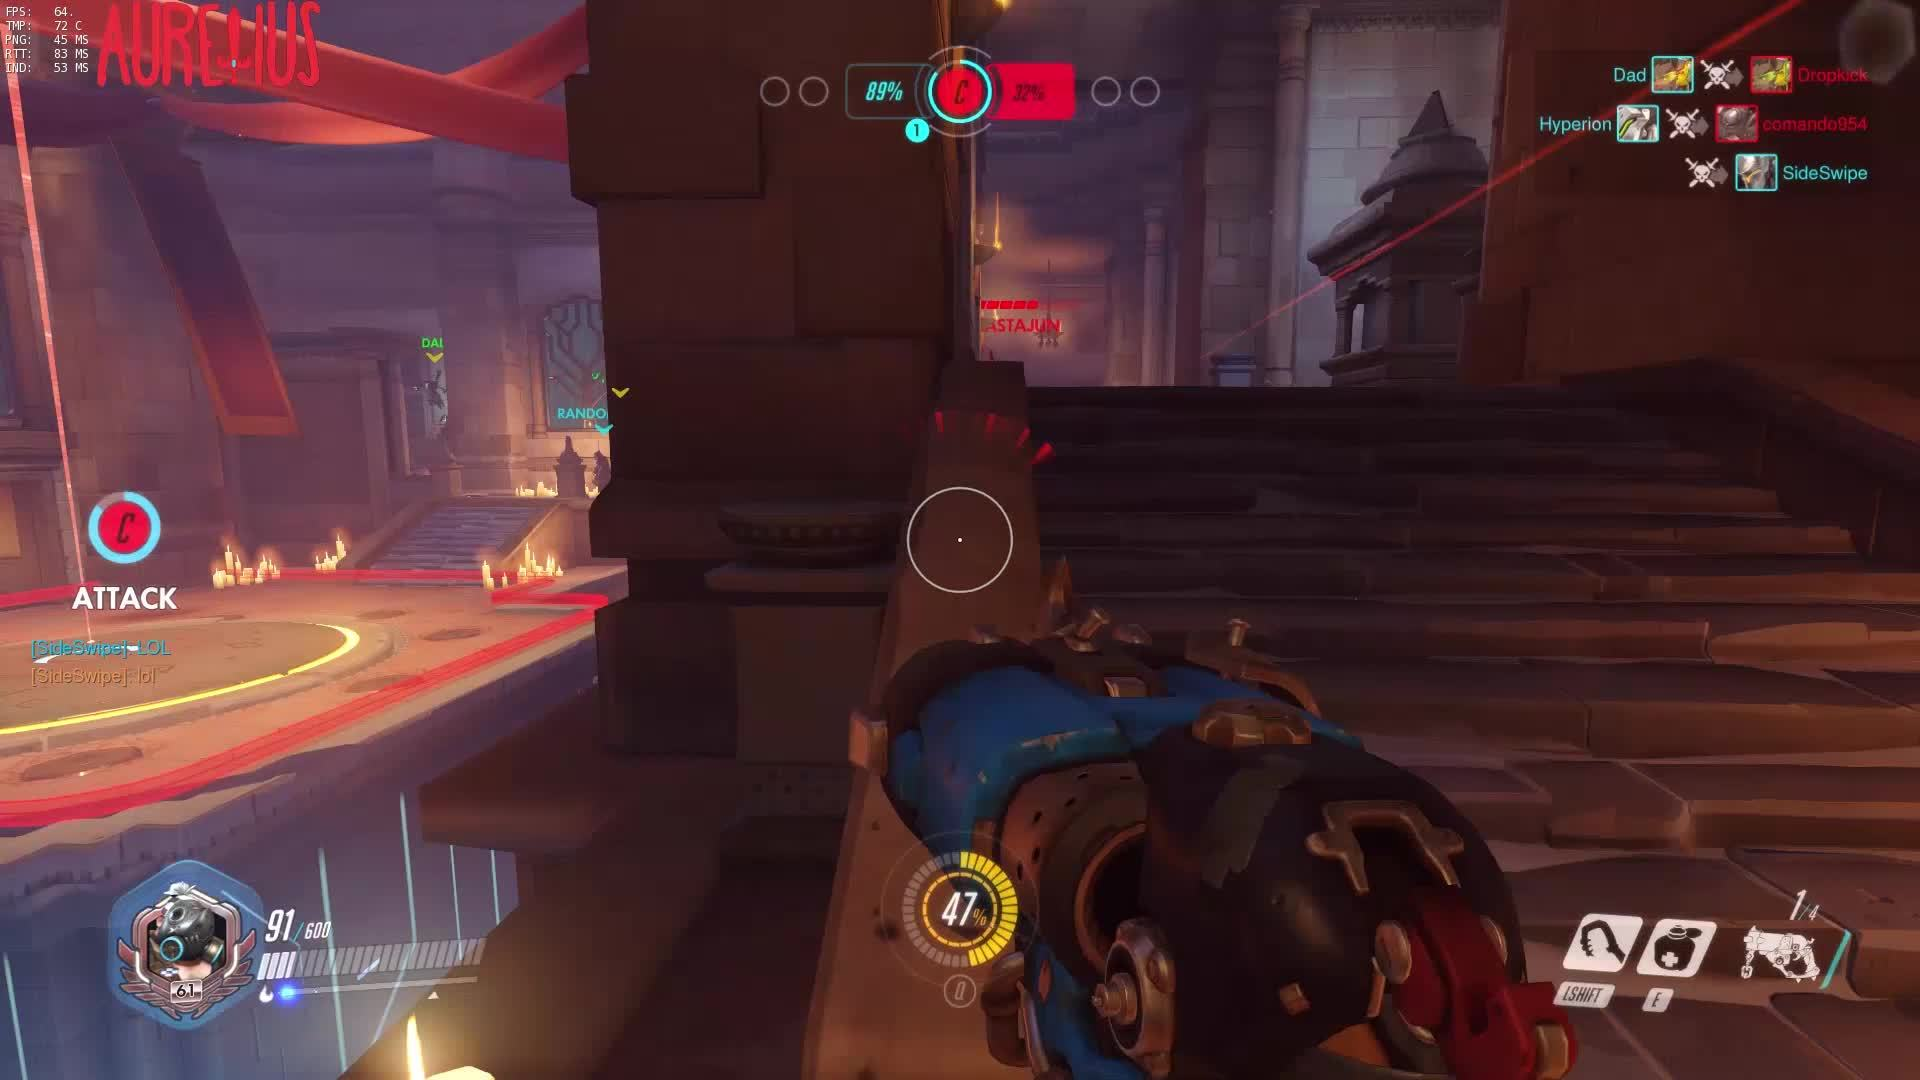 Suicide hook to win the round GIFs